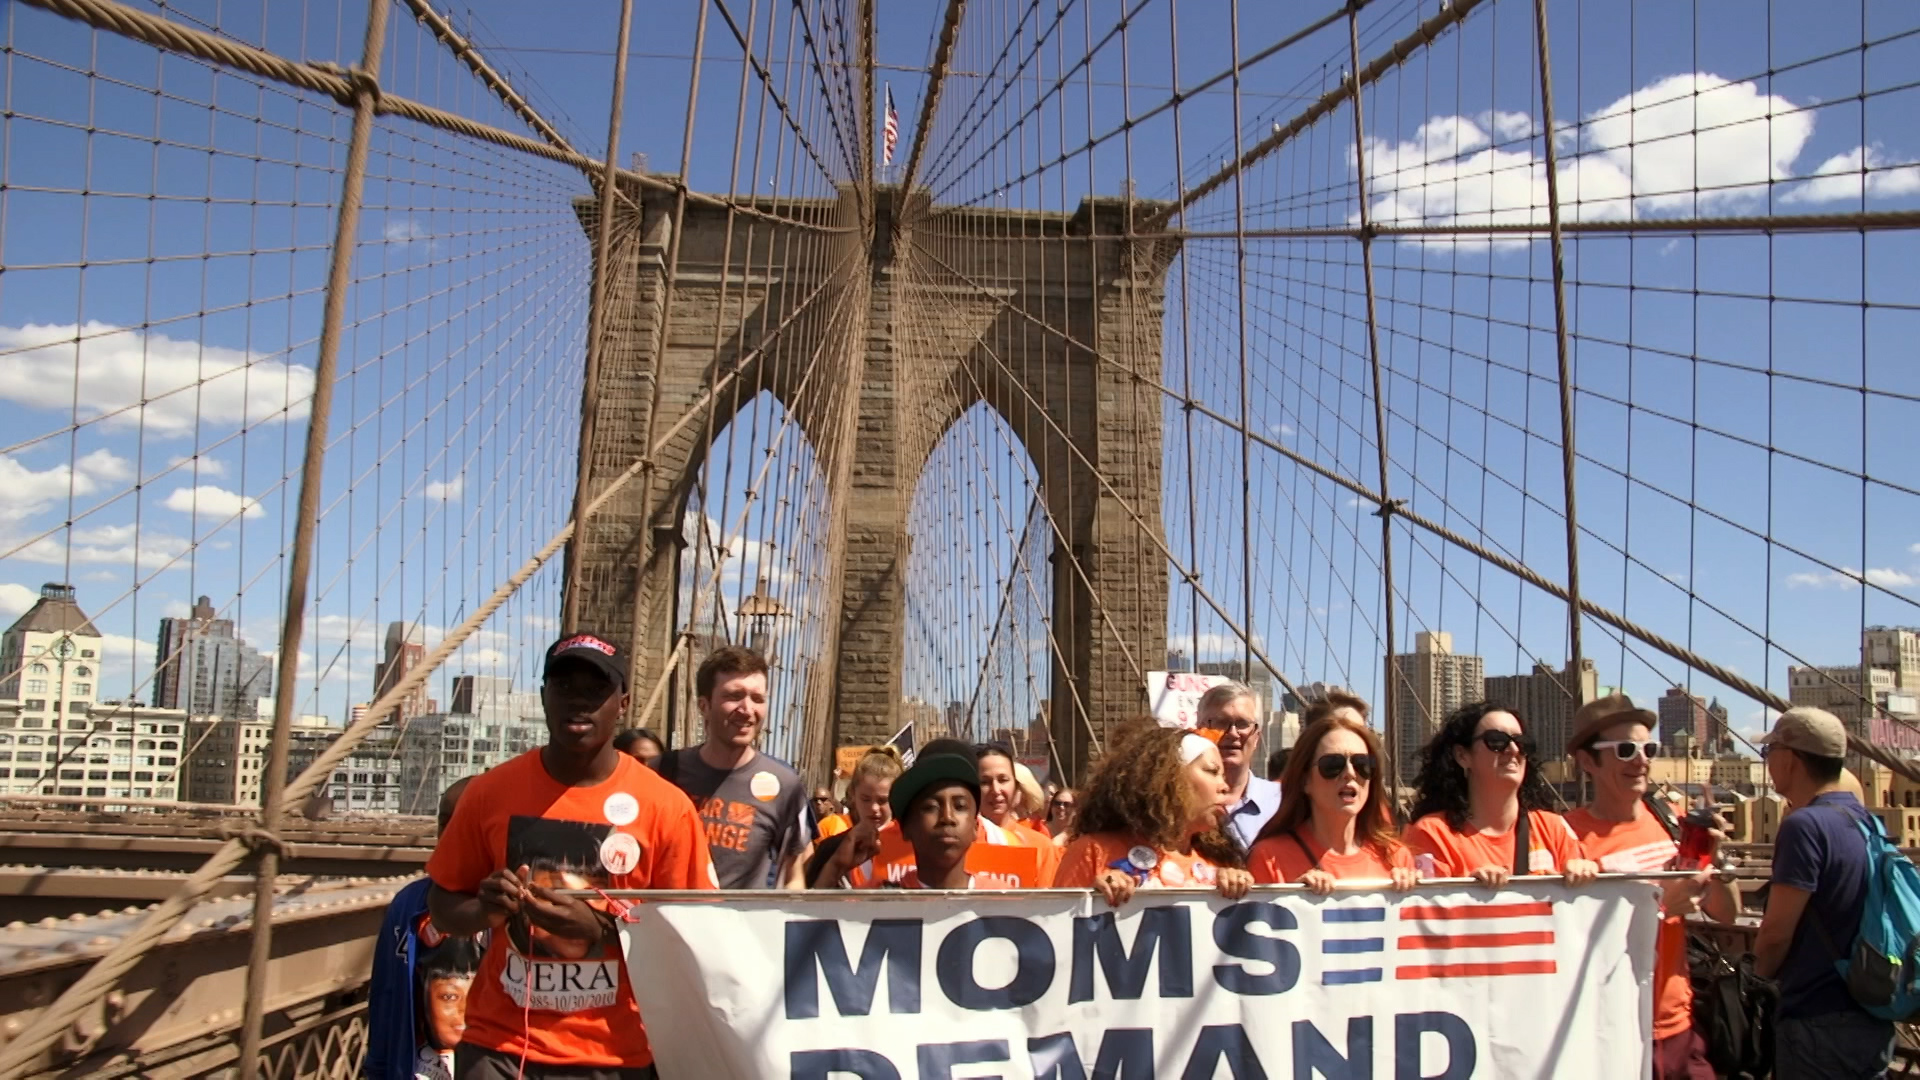 CBBC My Life: Too Many Guns - protest march on brooklyn bridge